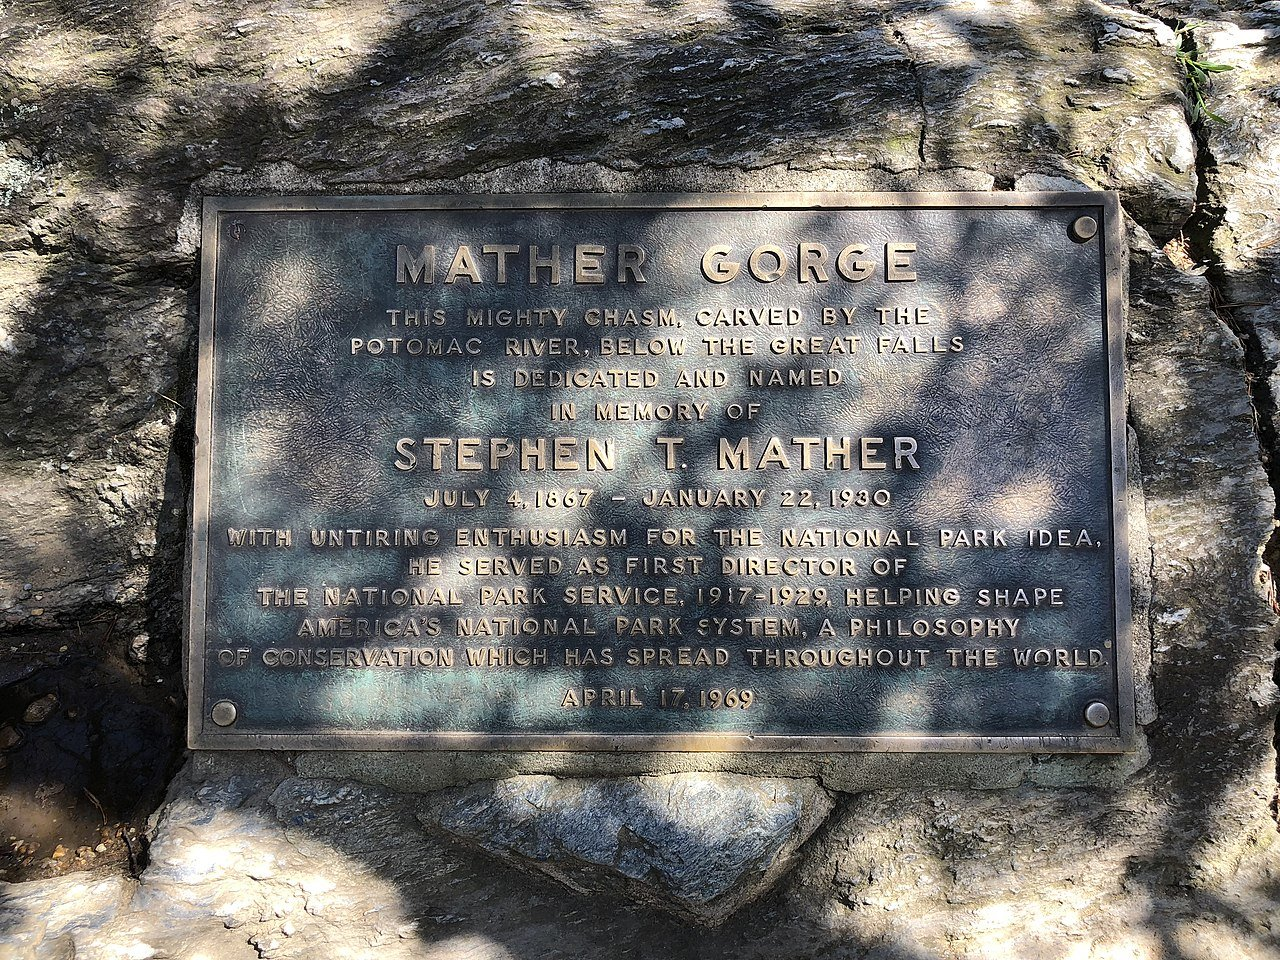 Plaque commemorating the naming of the Mather Gorge of the Potomac River